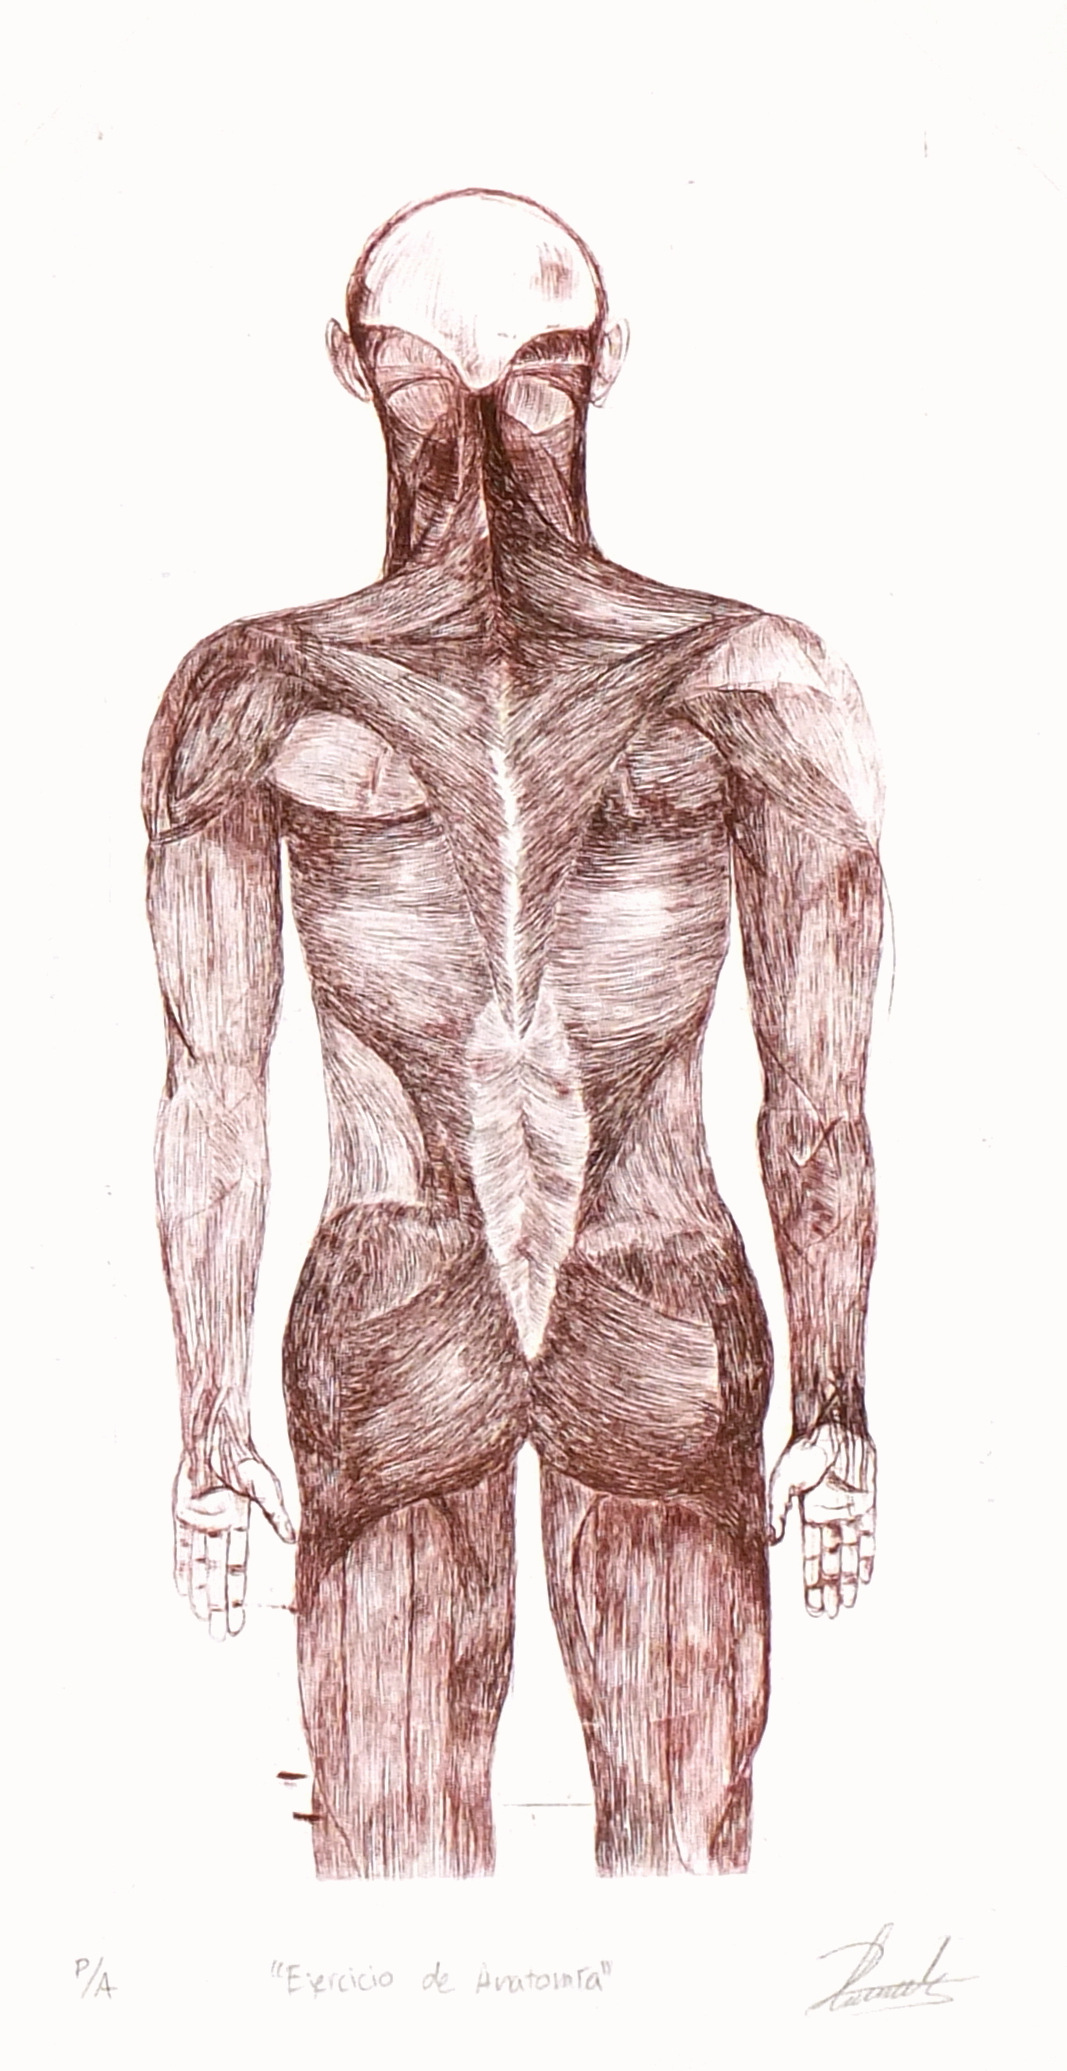 Aquatint - Anatomia, 2012-main-6081G